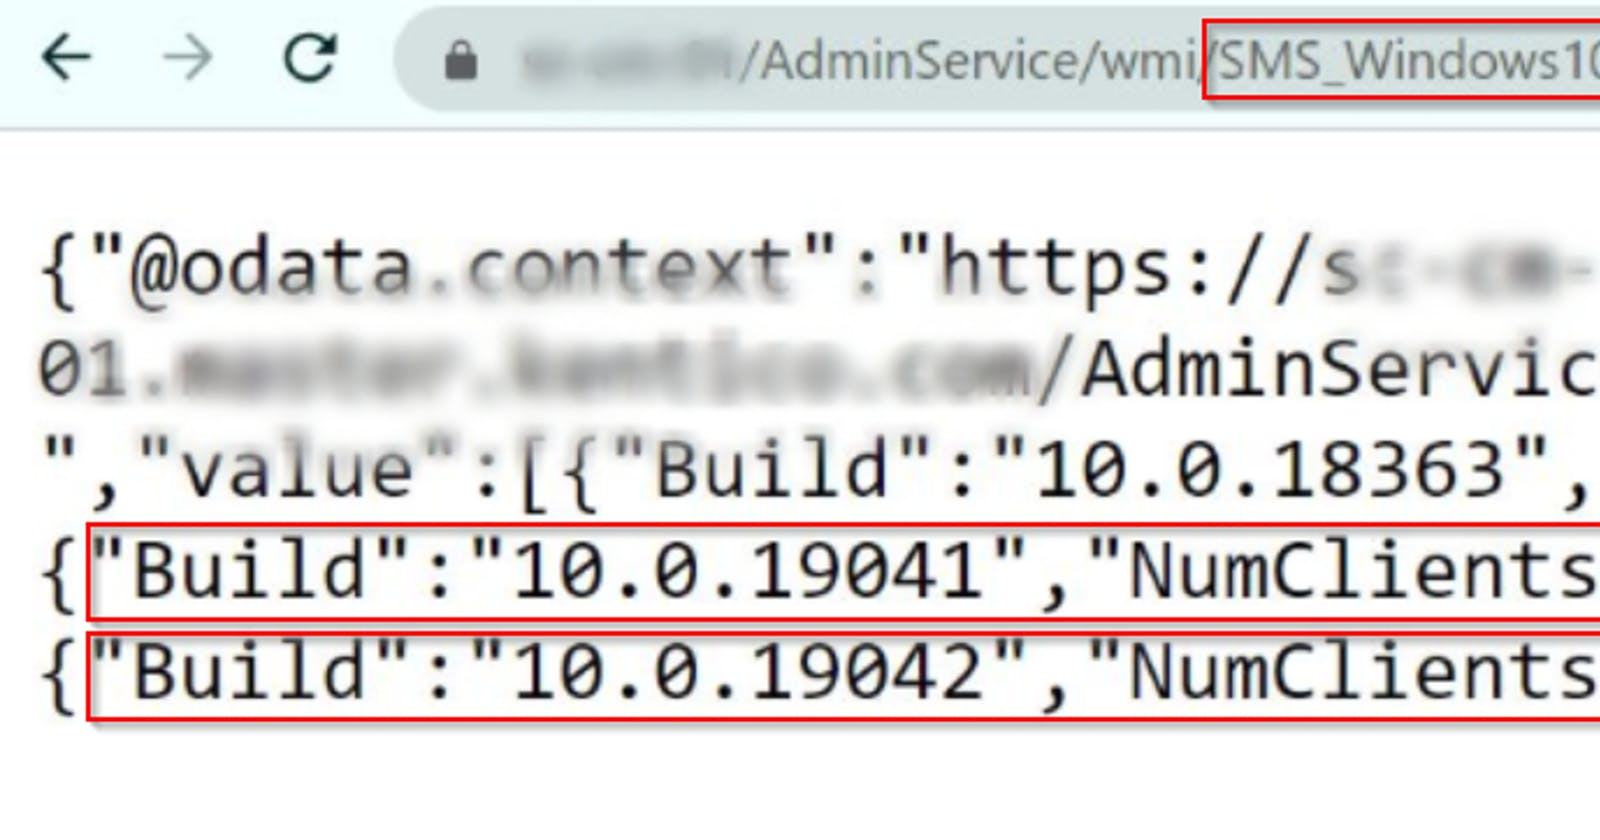 Getting information from SCCM Administration Service API